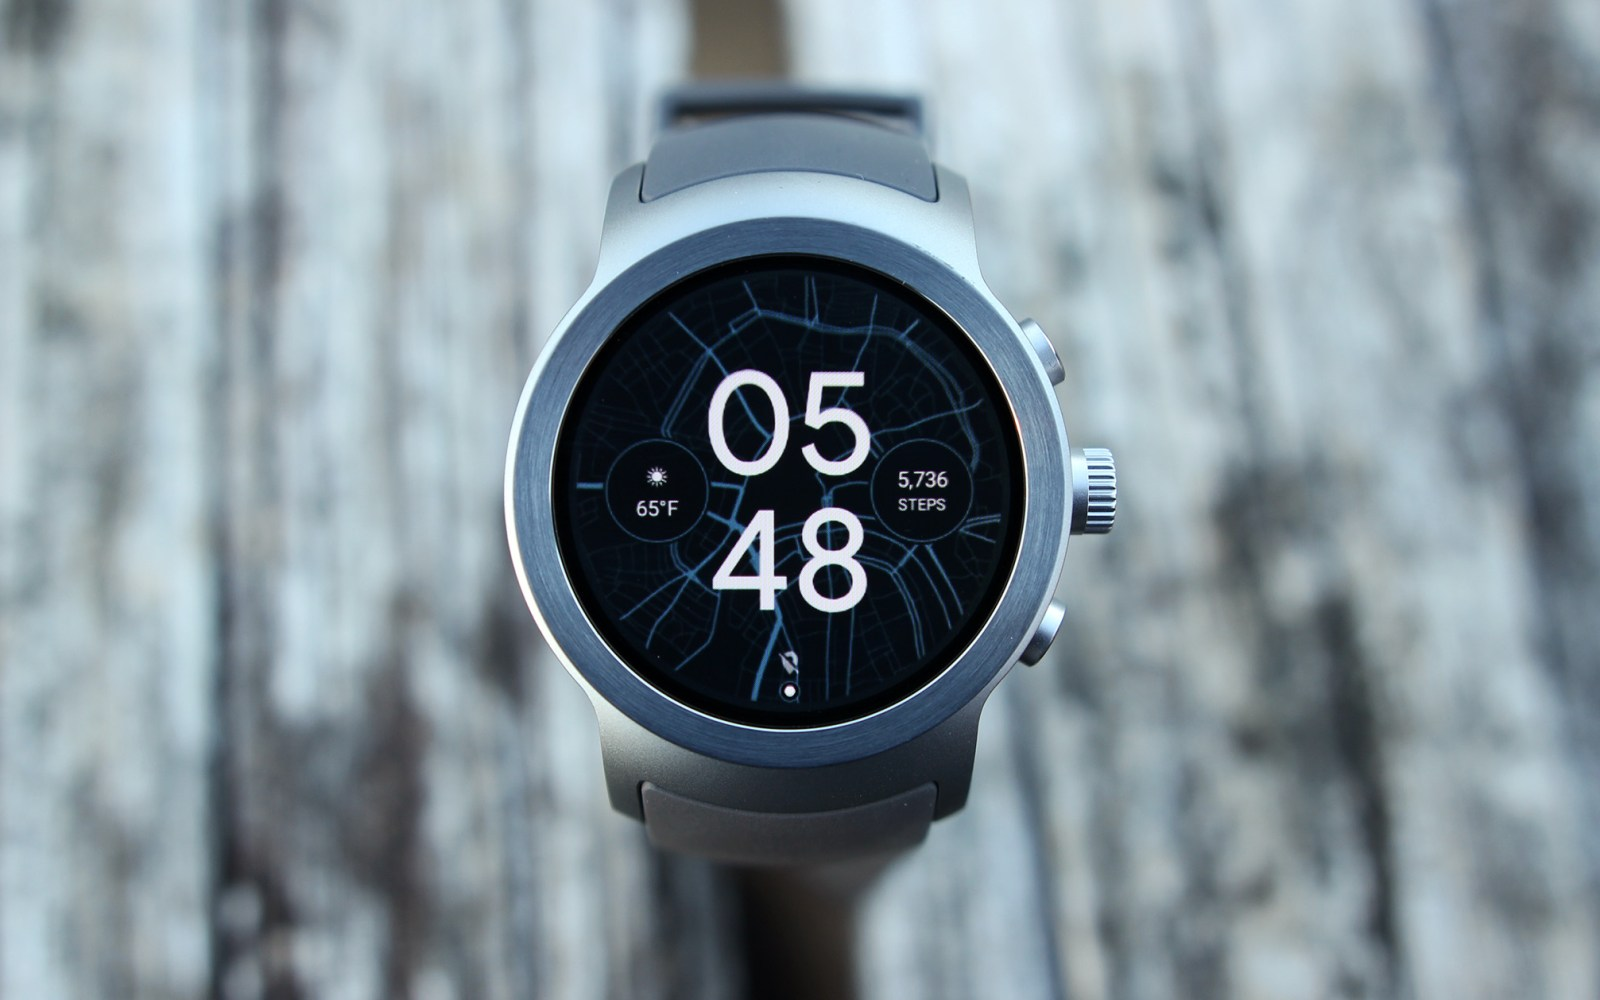 LG Watch Sport Review: Android Wear 2.0 arrives on hardware that tries to do it all [Video]